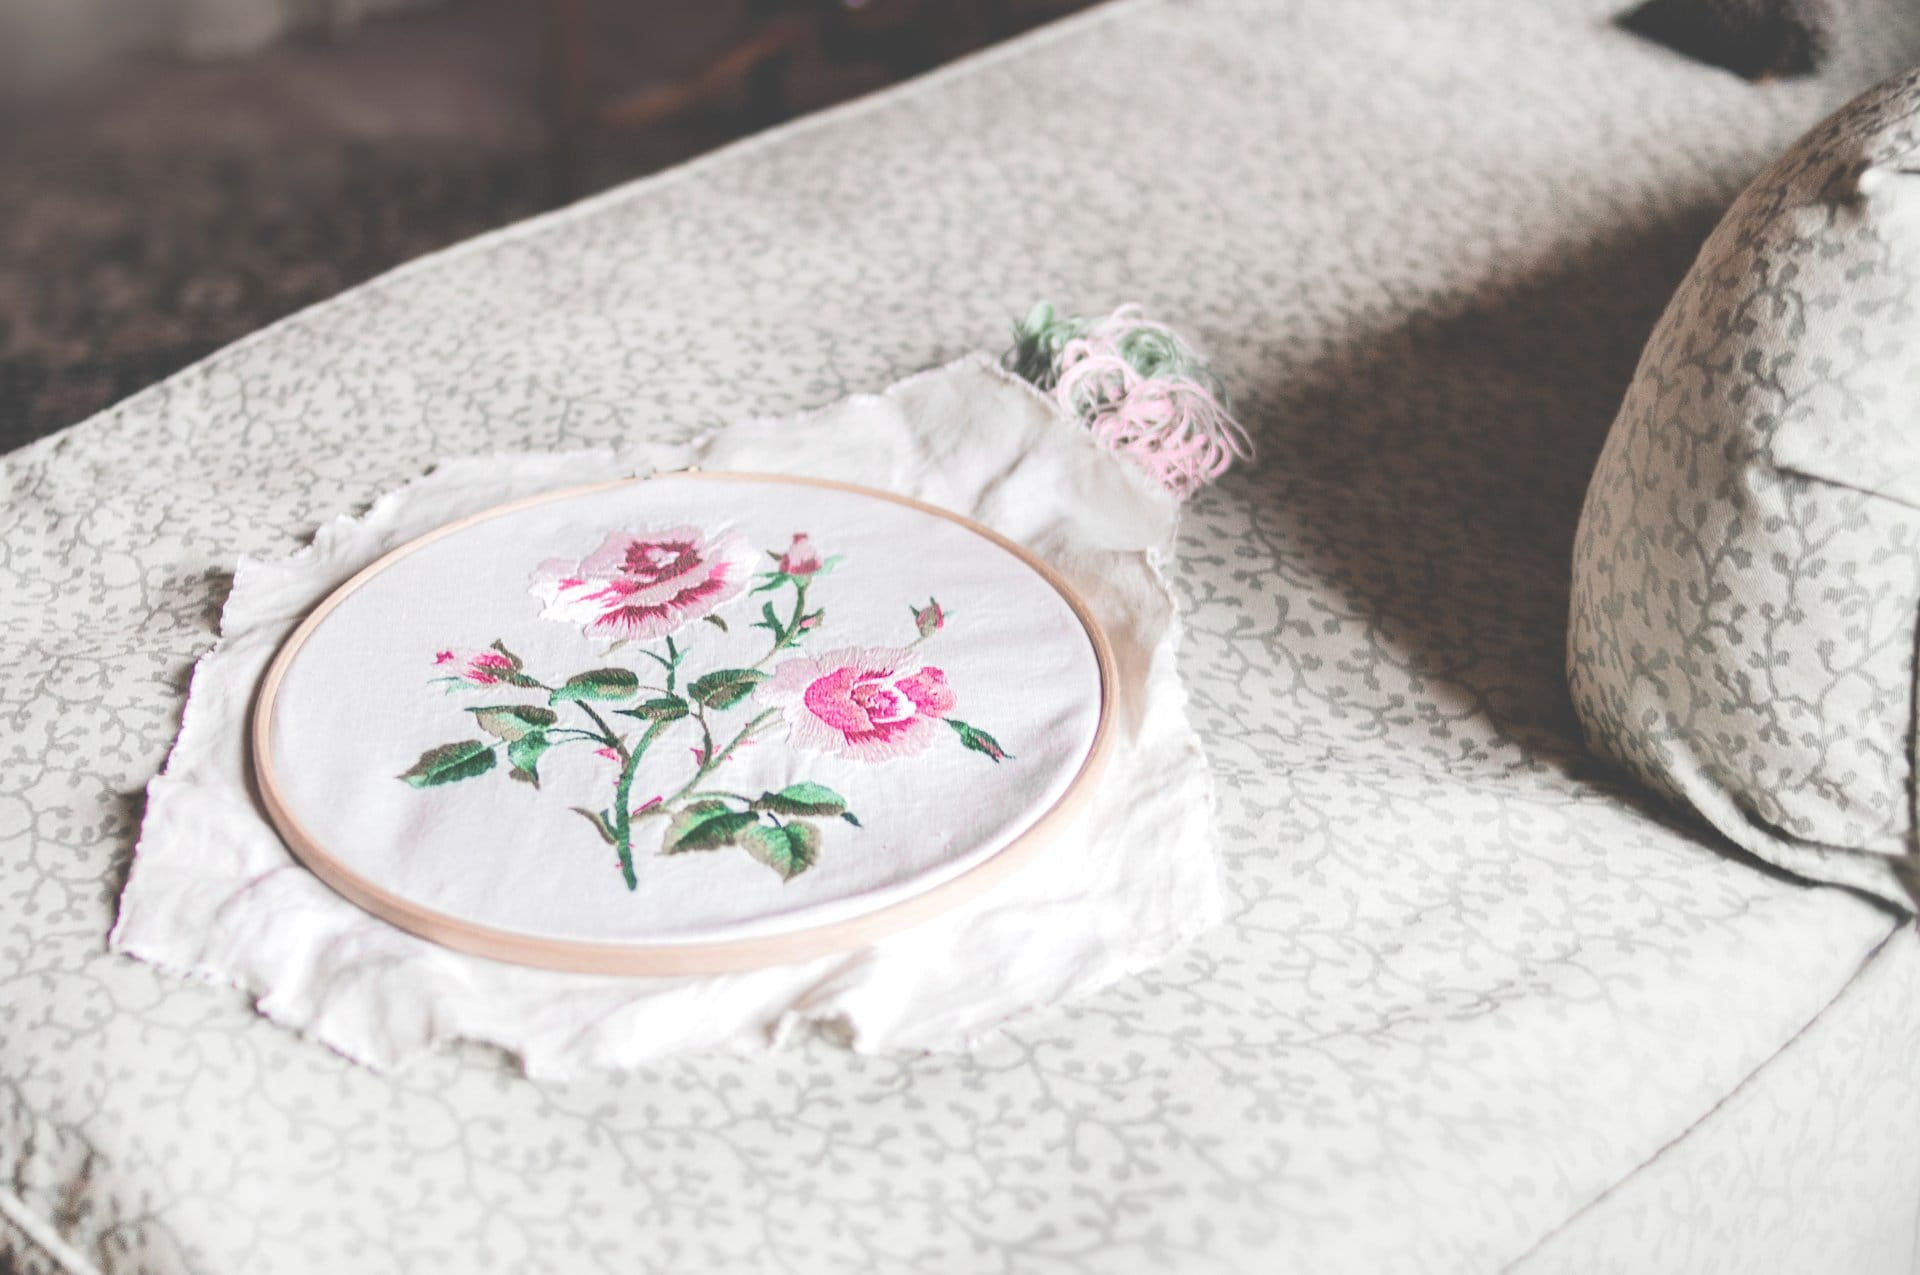 Are Embroidery Hoops Reusable?